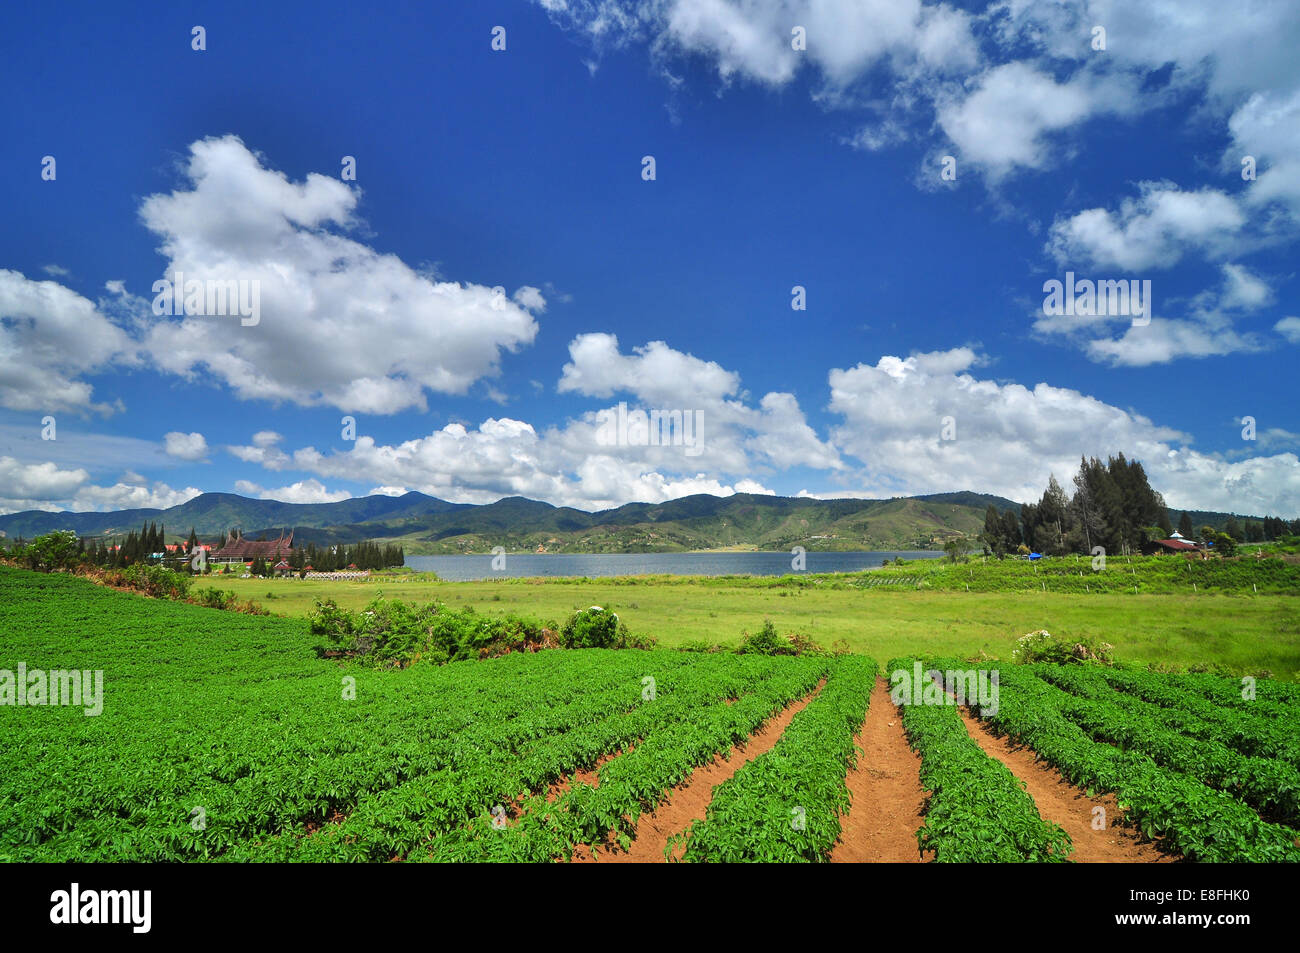 Indonesia, West Sumatra, Solok, Alahan Panjang, Clouds over field - Stock Image